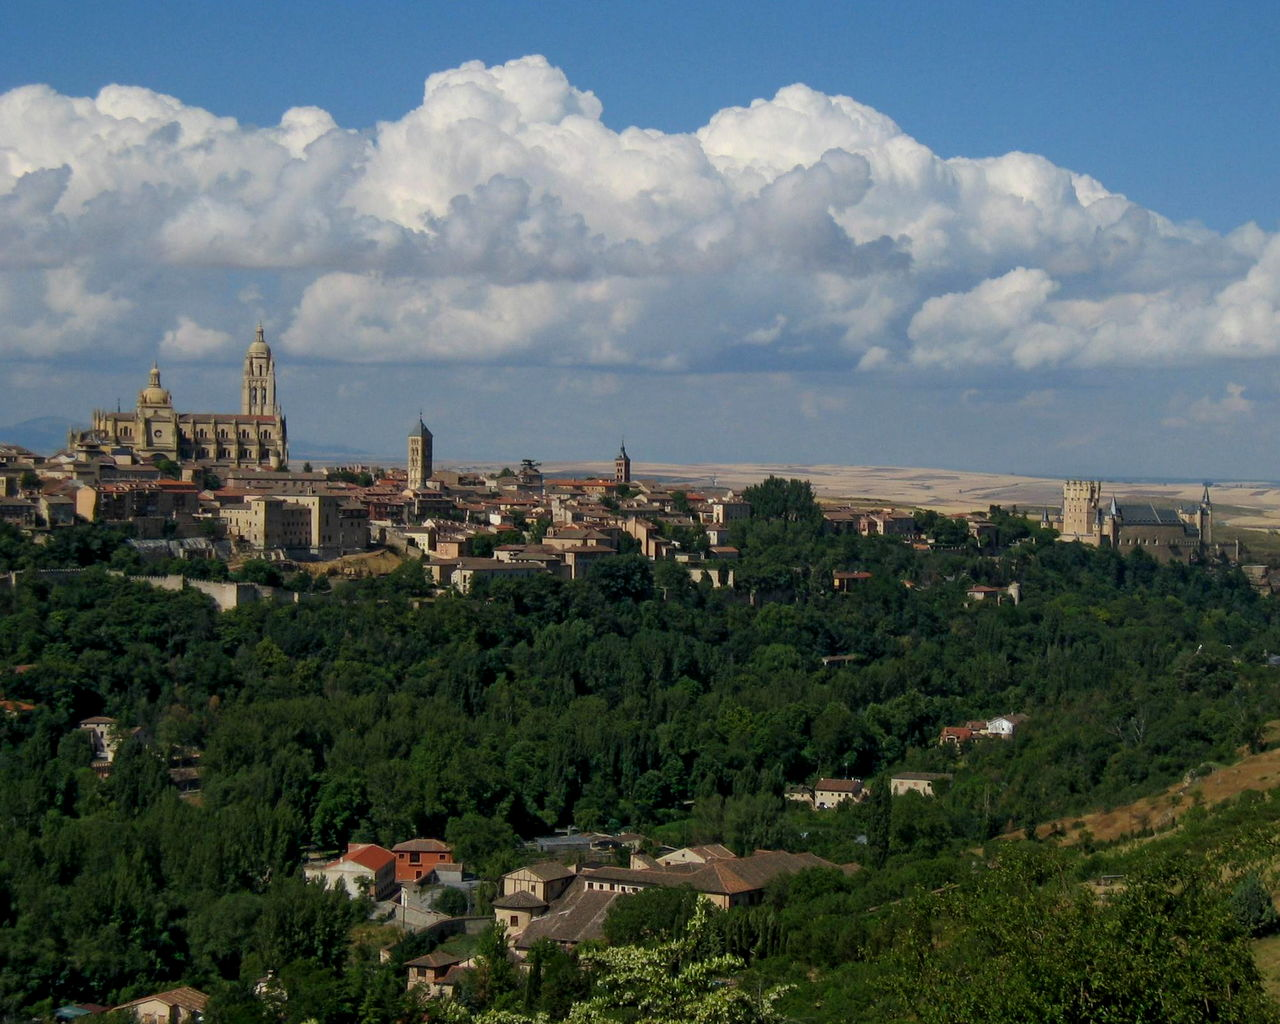 Segovia cityscape with Cathedral and Alcazar, Spain Alcazar Architecture Building Exterior Built Structure Cathedral City Cityscape Cloud Cloud - Sky Cloudy Day Distant Green Color Growth High Angle View Lush Foliage No People Outdoors Residential District Scenics Sea Segovia Sky Tree Wide Shot